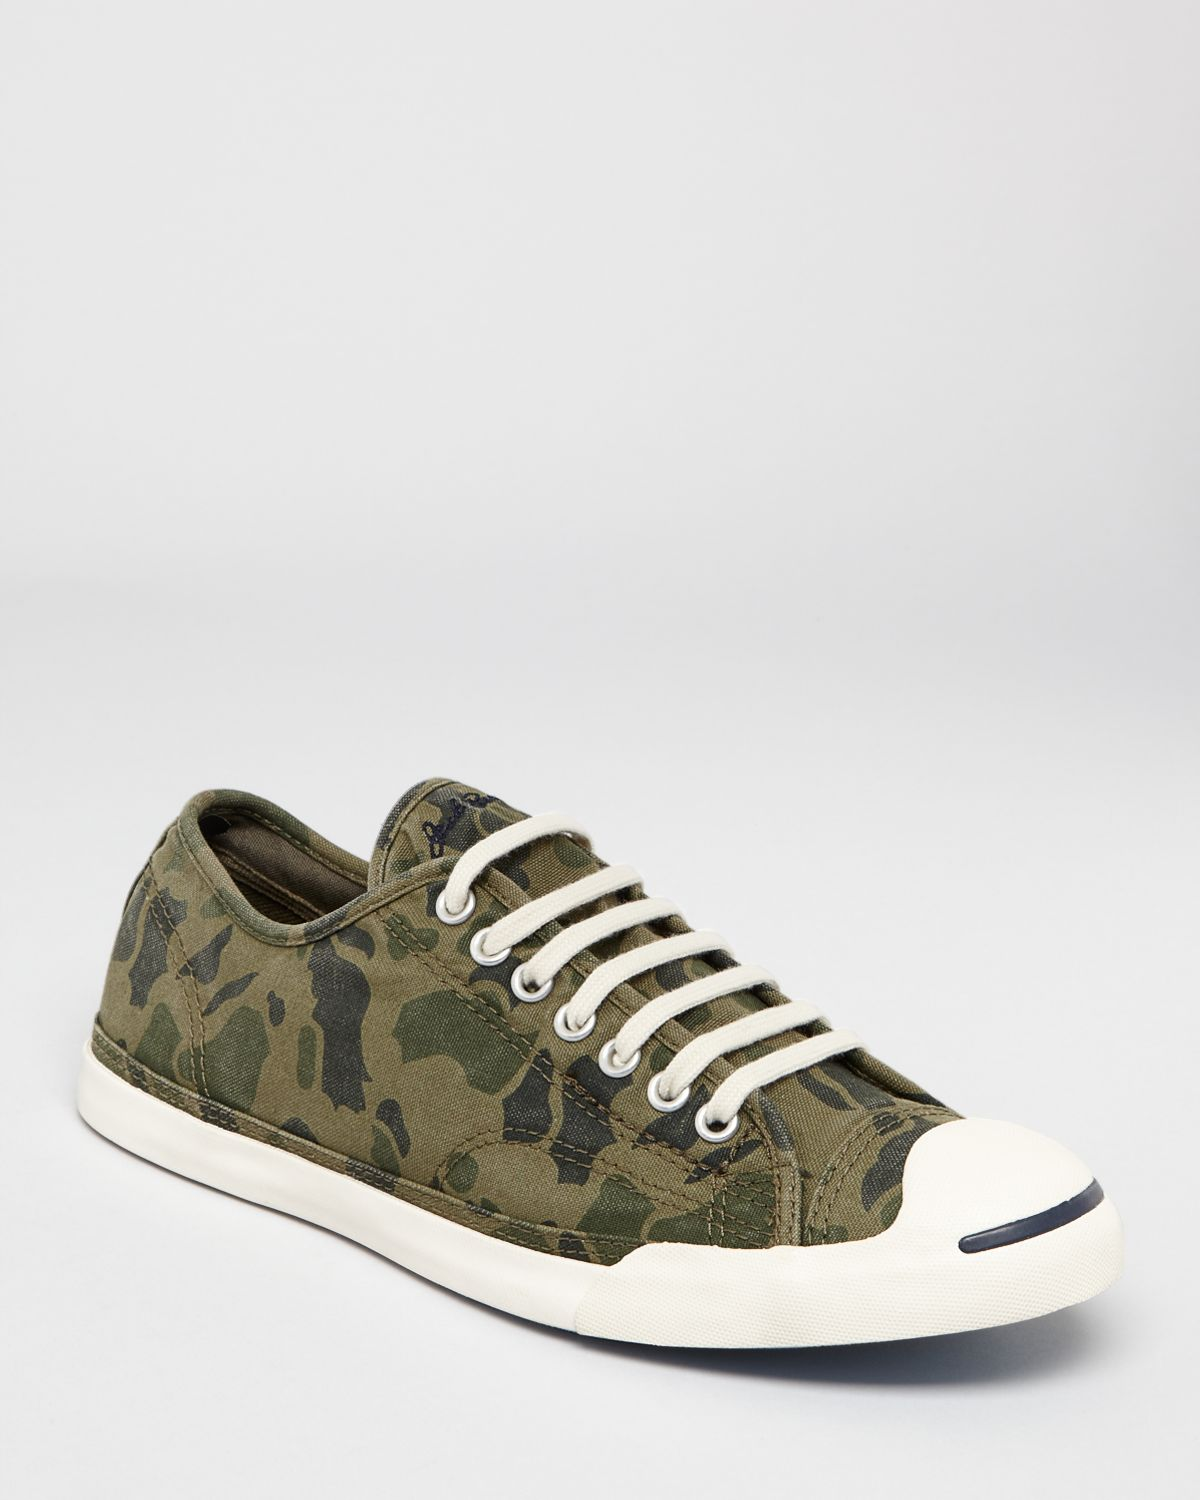 46f2a7280fc8d2 Lyst - Converse Jack Purcell Lp Camo Sneakers in Green for Men